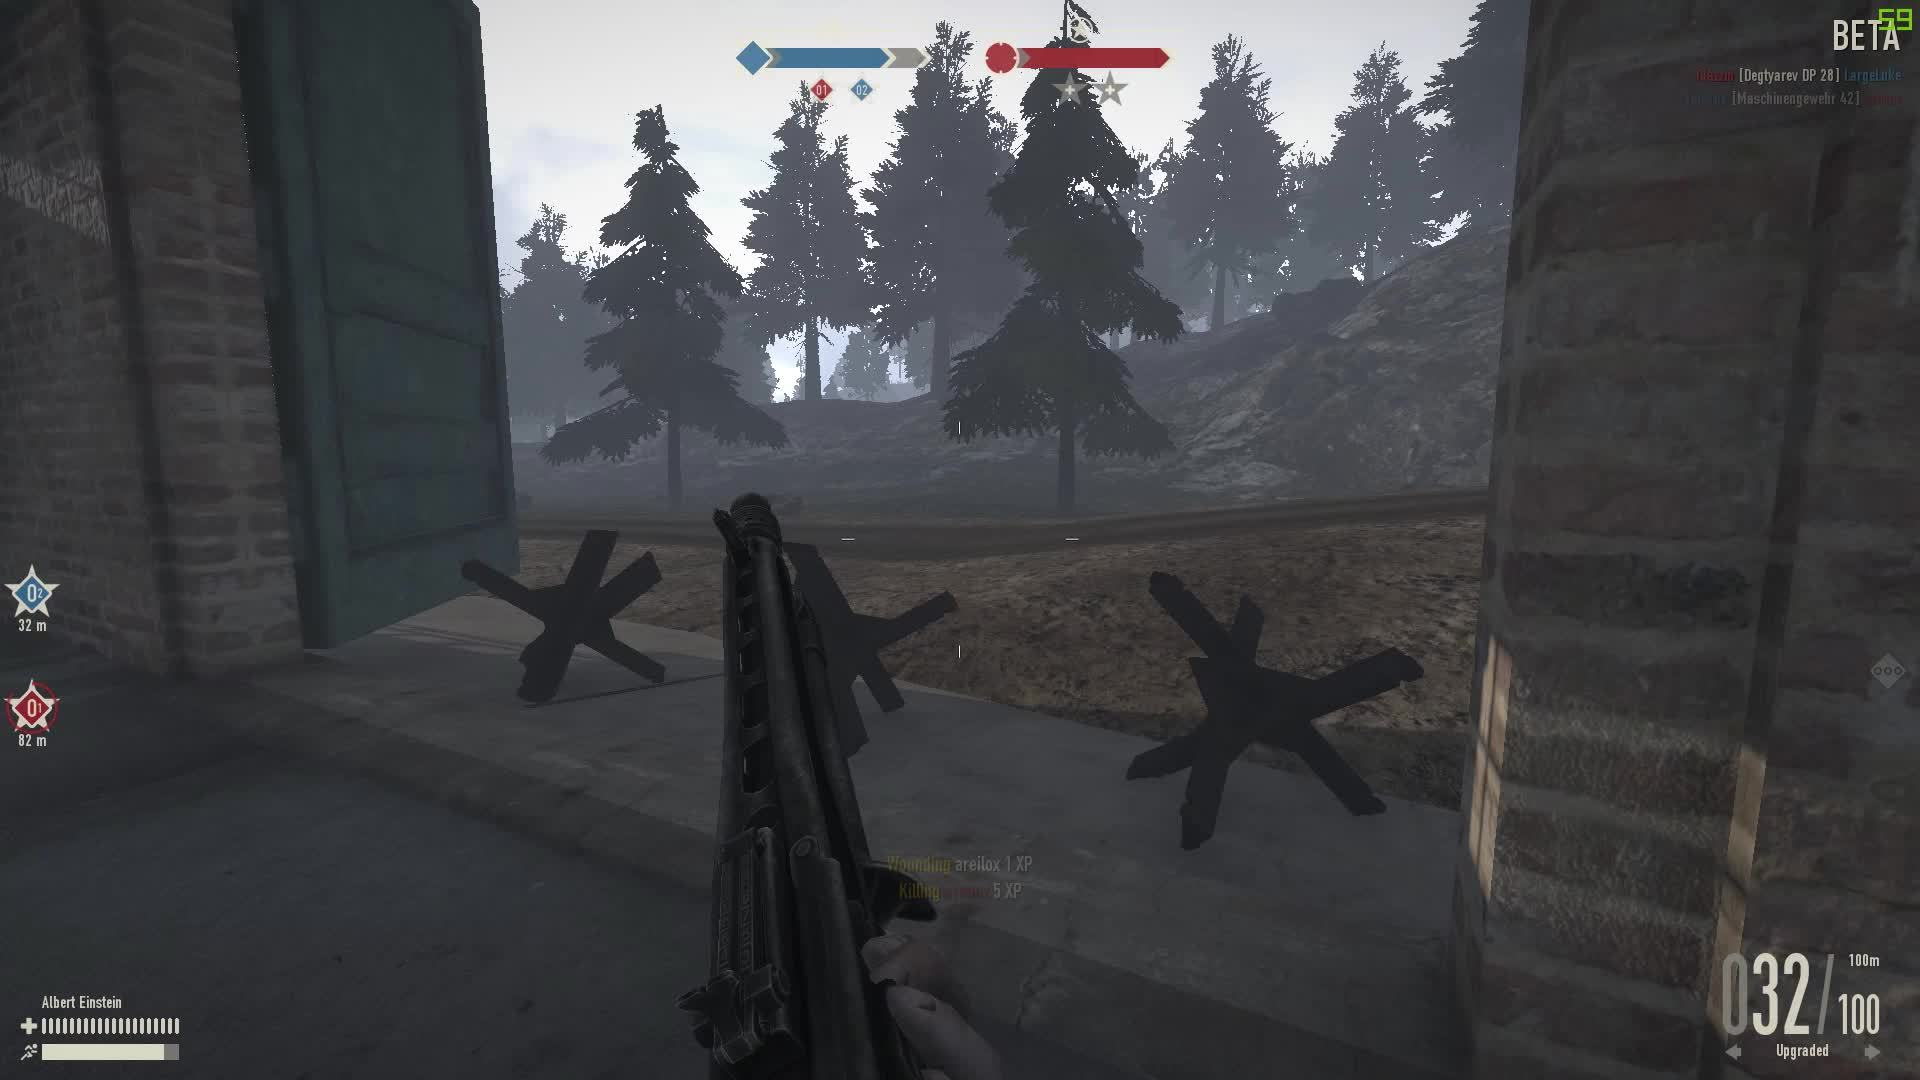 heroesandgenerals, Stabbed in the FACE! GIFs